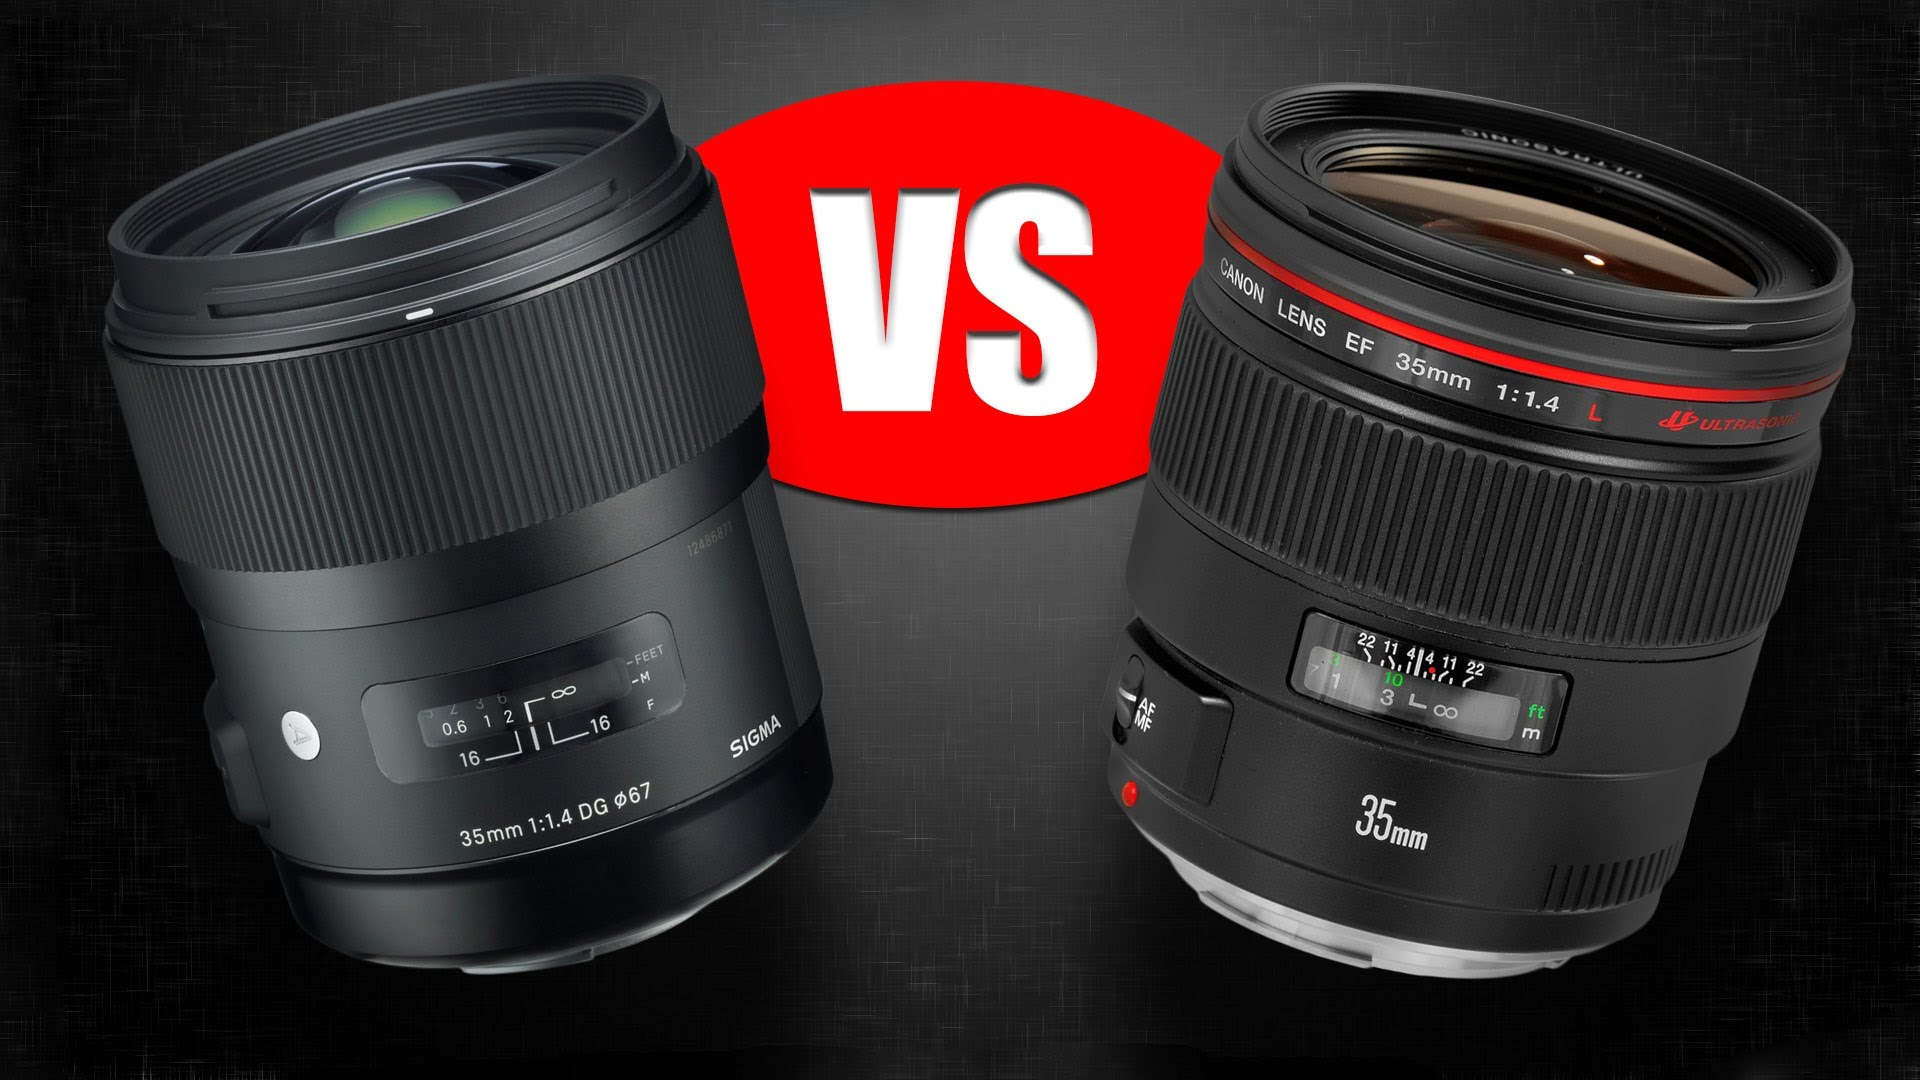 Lens Comparison: Sigma 35mm f/1.4 DG HSM vs. Canon EF 35mm f/1.4L USM ...: https://lensvid.com/gear/lens-comparison-sigma-35mm-f1-4-art-vs...